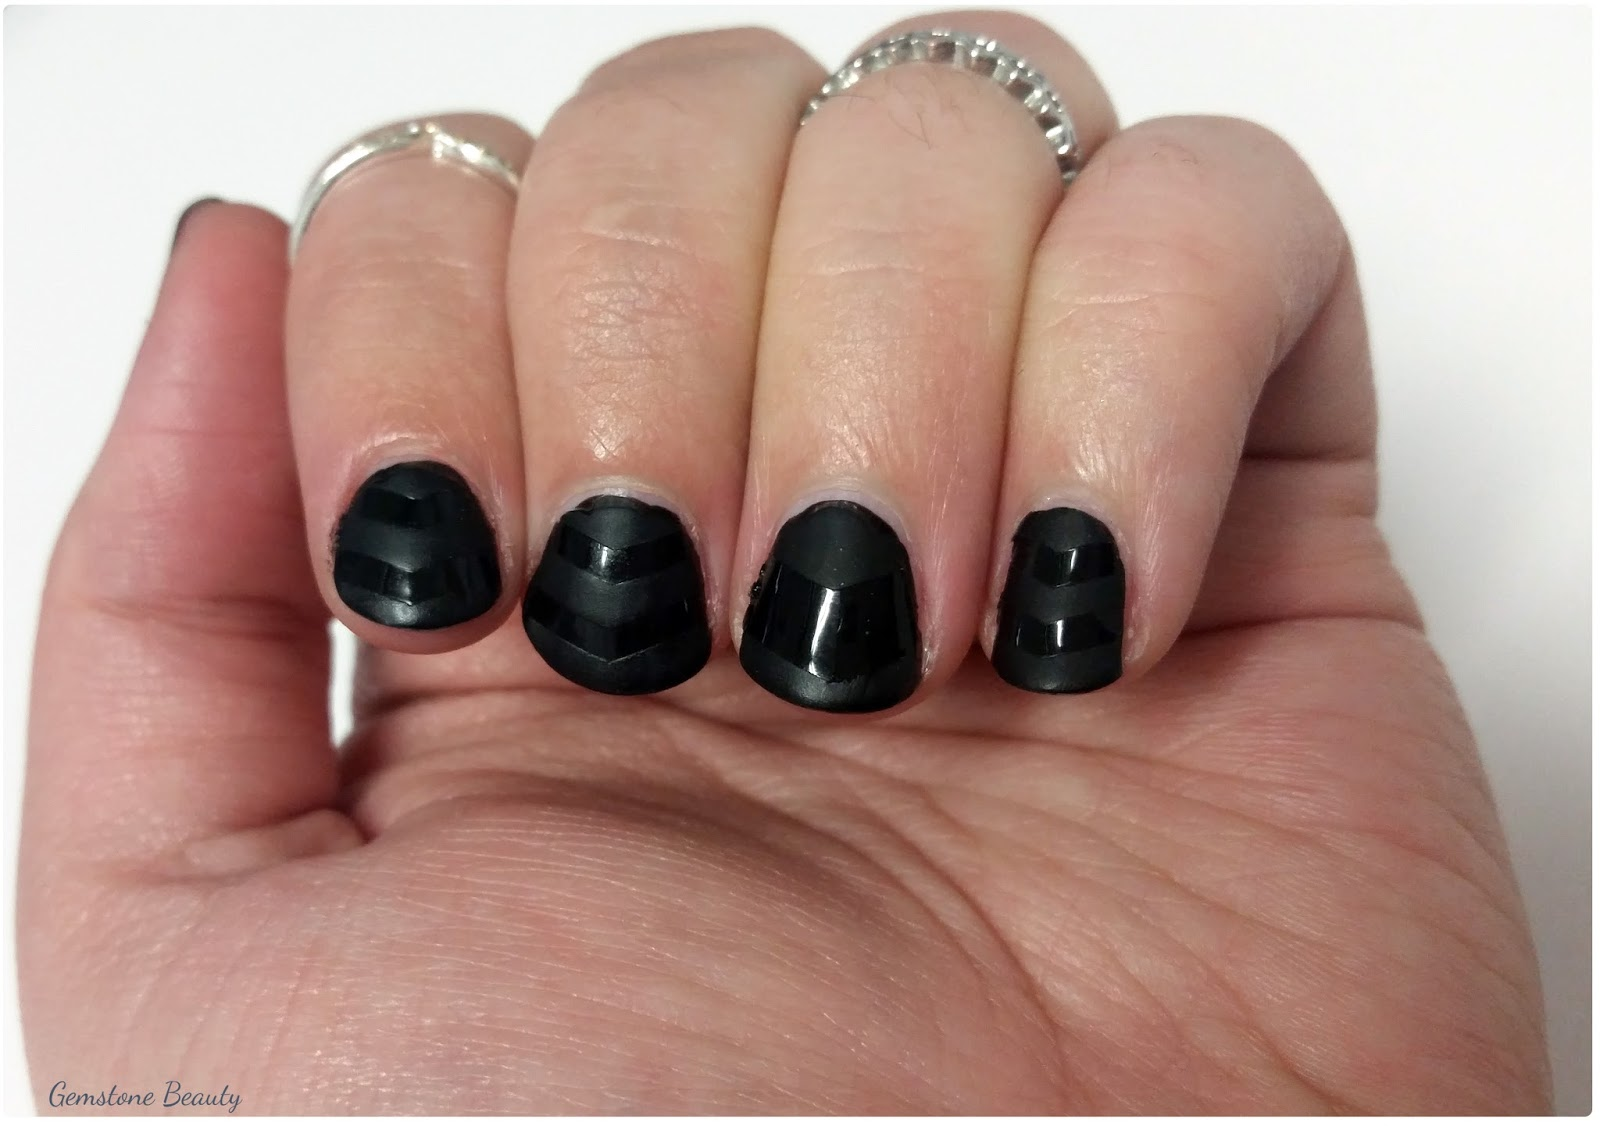 Gemstone Beauty: October Nail Art Challenge Day 1: Black